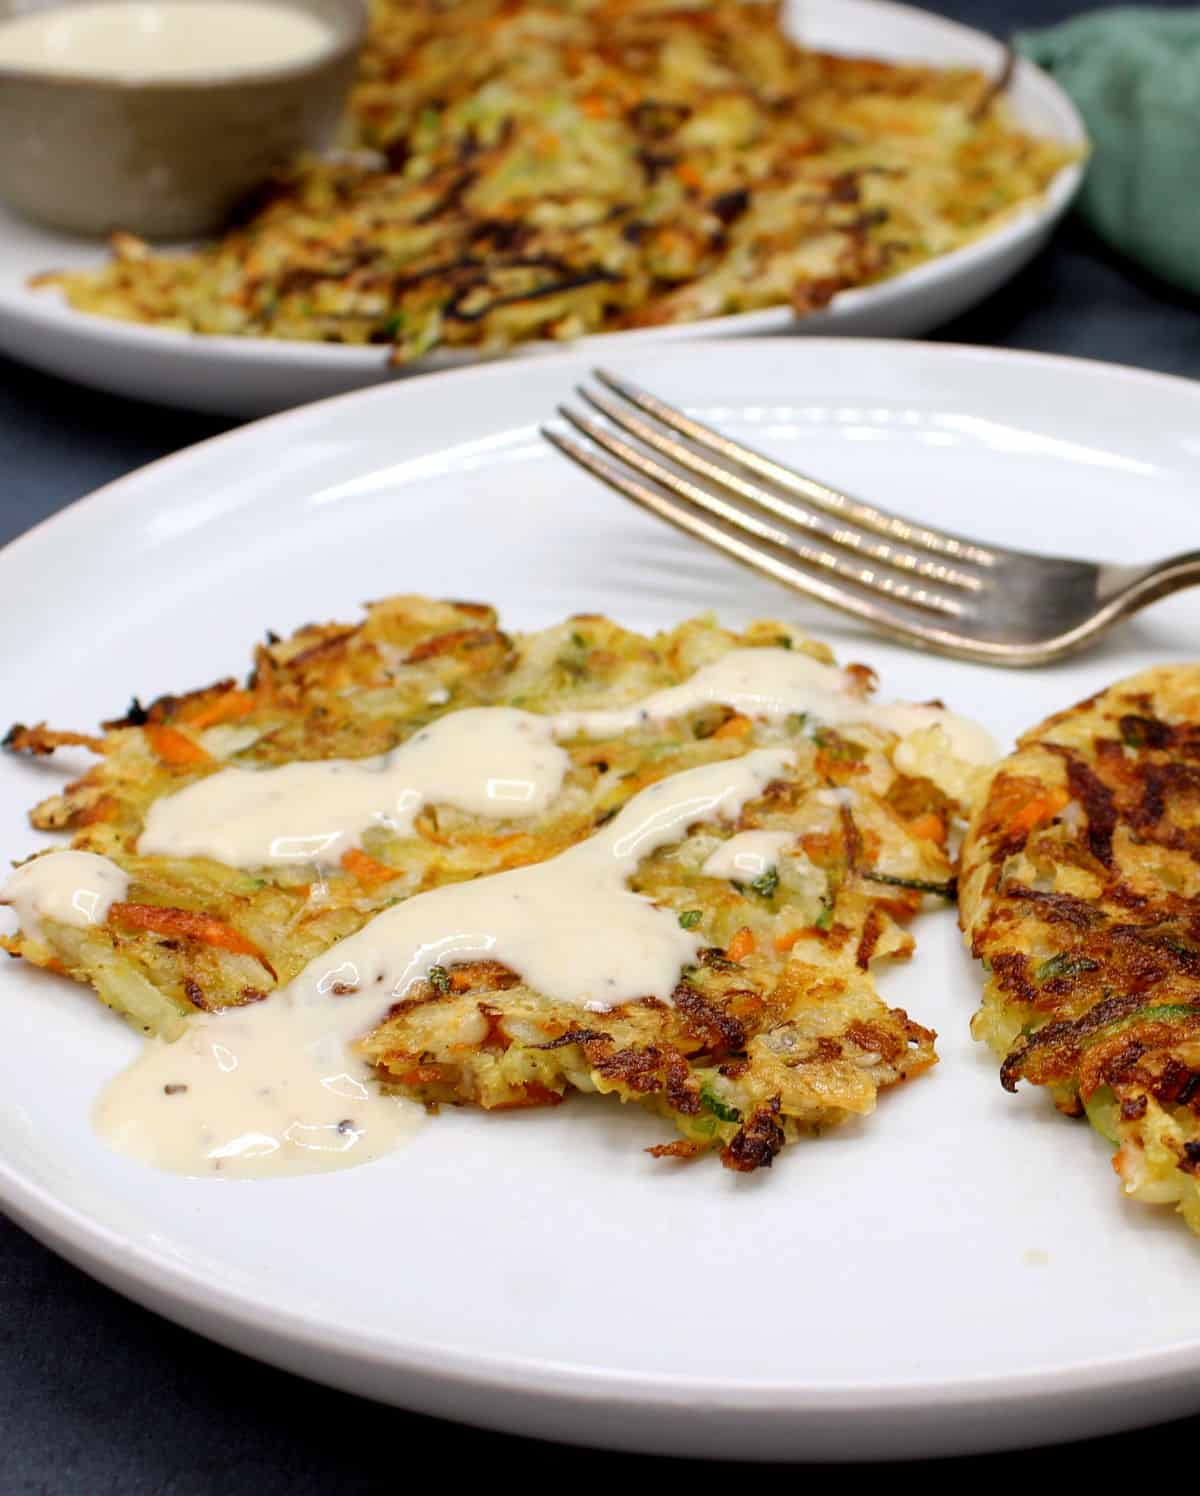 Photo of two vegan hash browns on a white plate with a creamy white sauce with more hash browns in background.